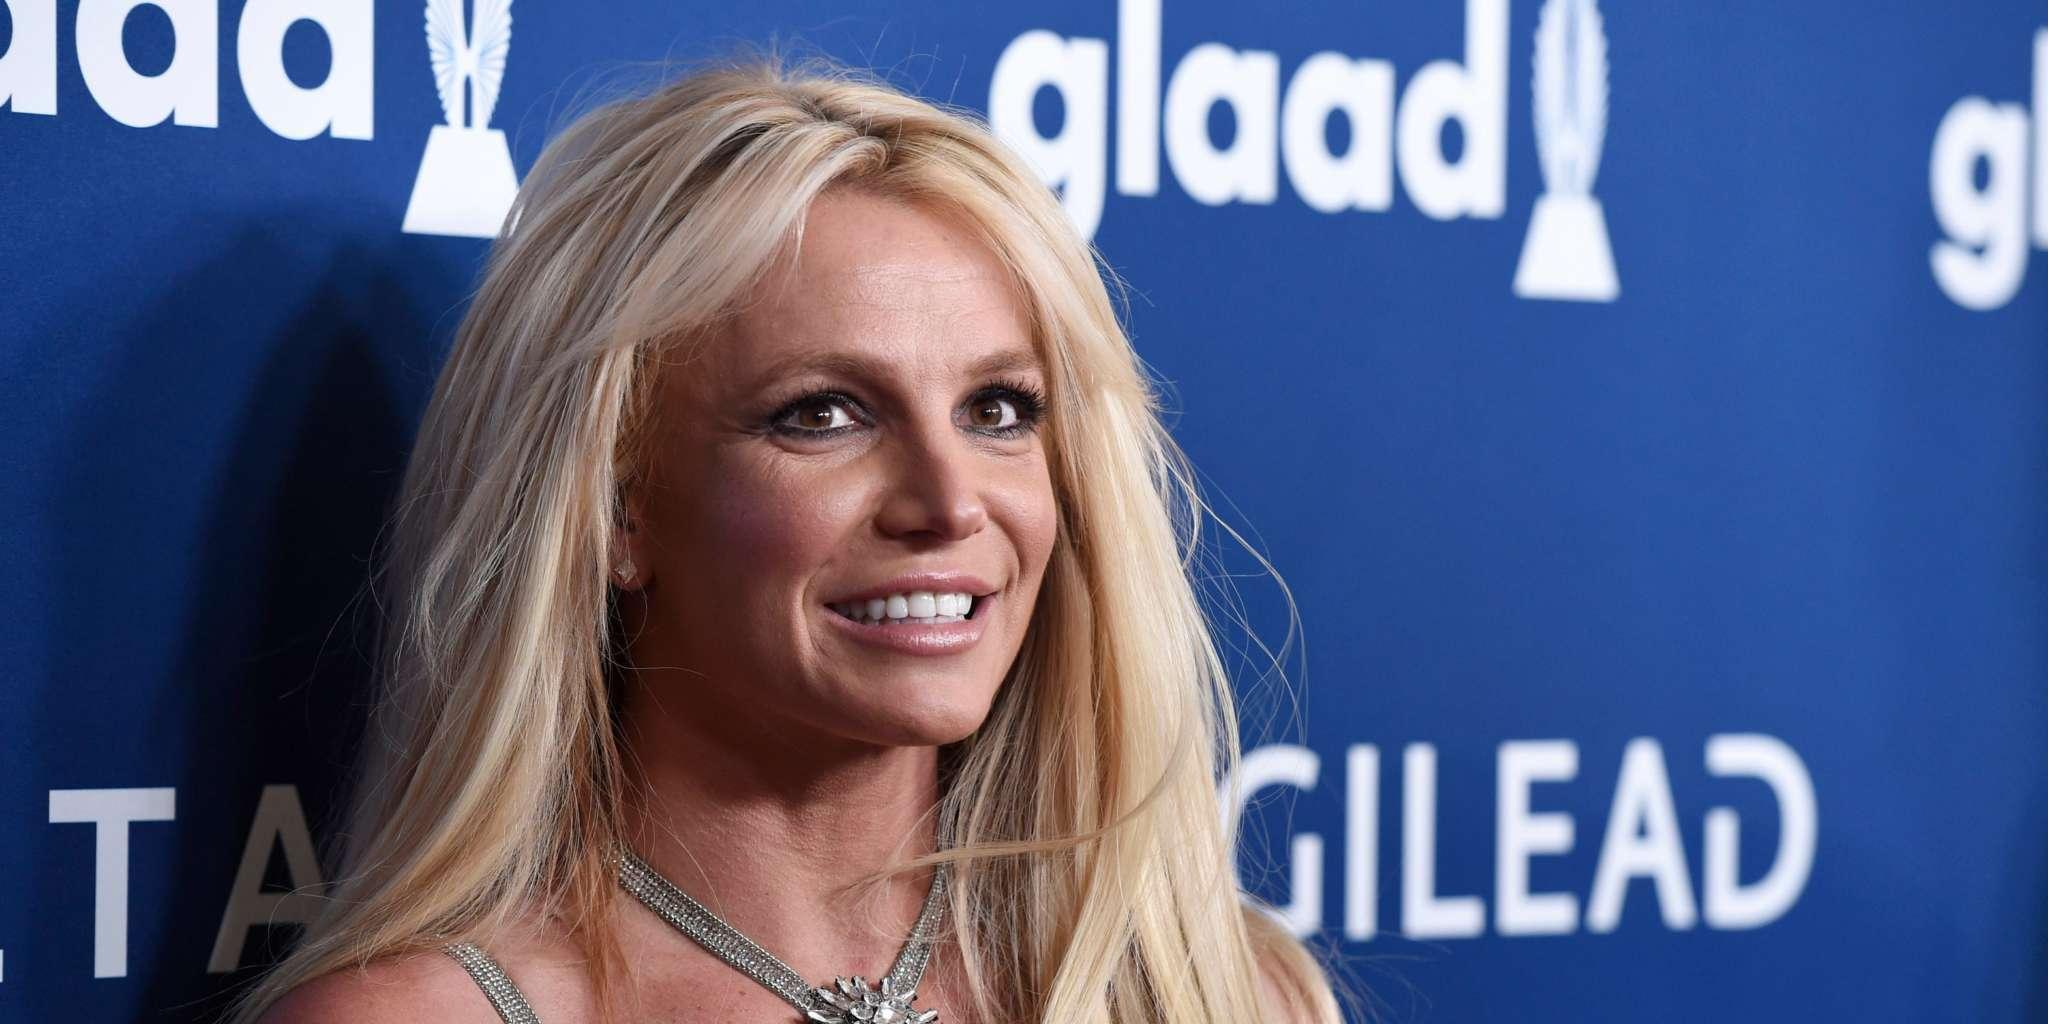 Britney Spears Former Photographer Is Worried About The Star -- Reads Letter She Wrote Saying She Has 'No Rights'